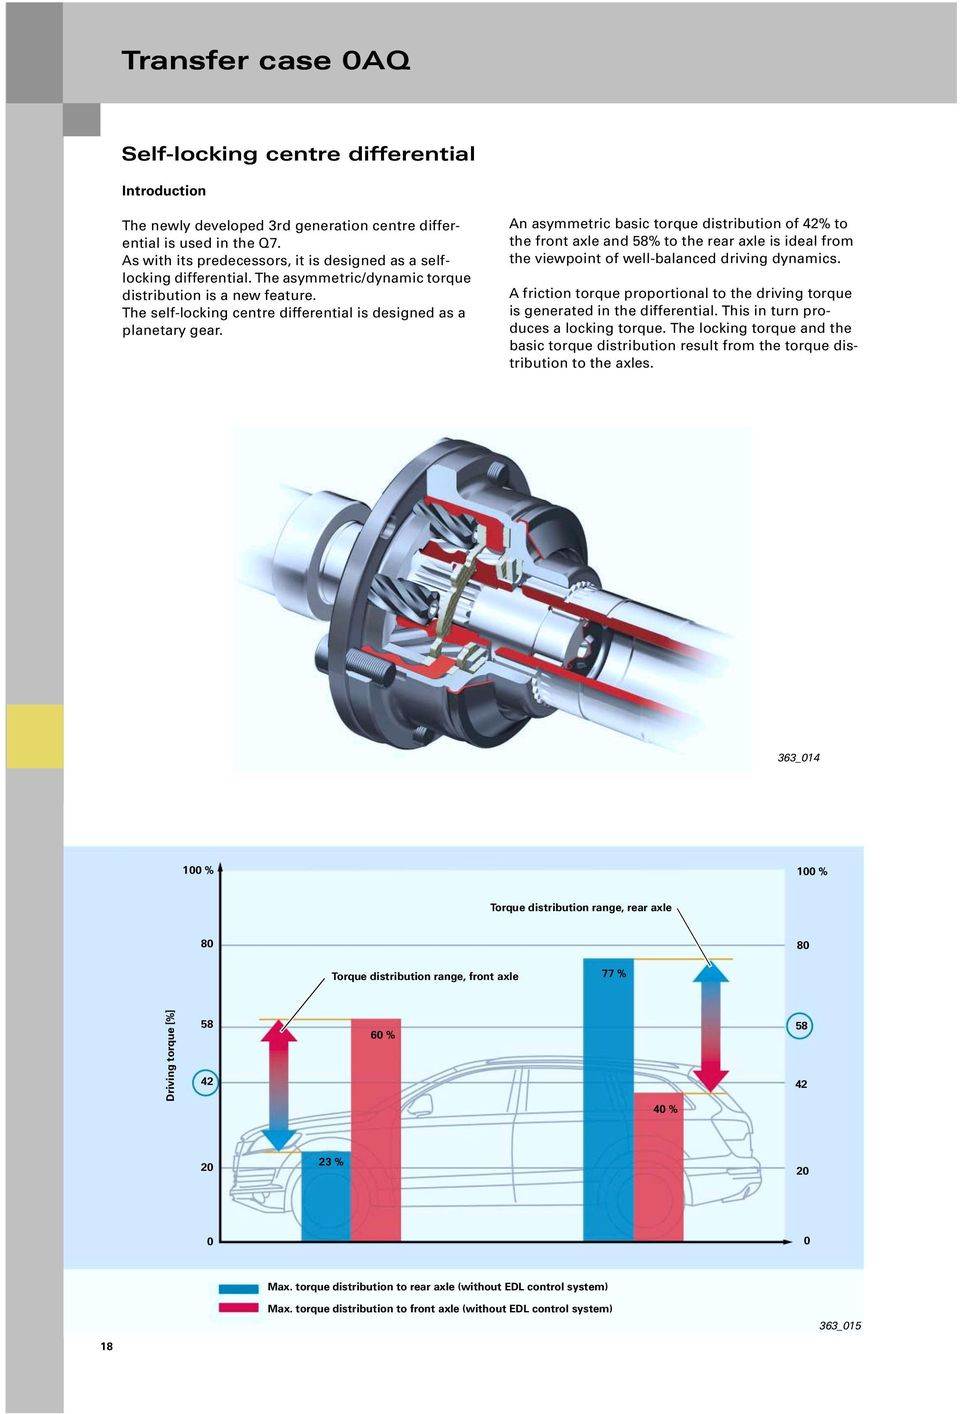 Service Training Audi Q7 Power Transmission Transfer Case 0aq Front Axle And Differential Exploded View Diagram Pictures The Self Locking Centre Is Designed As A Planetary Gear